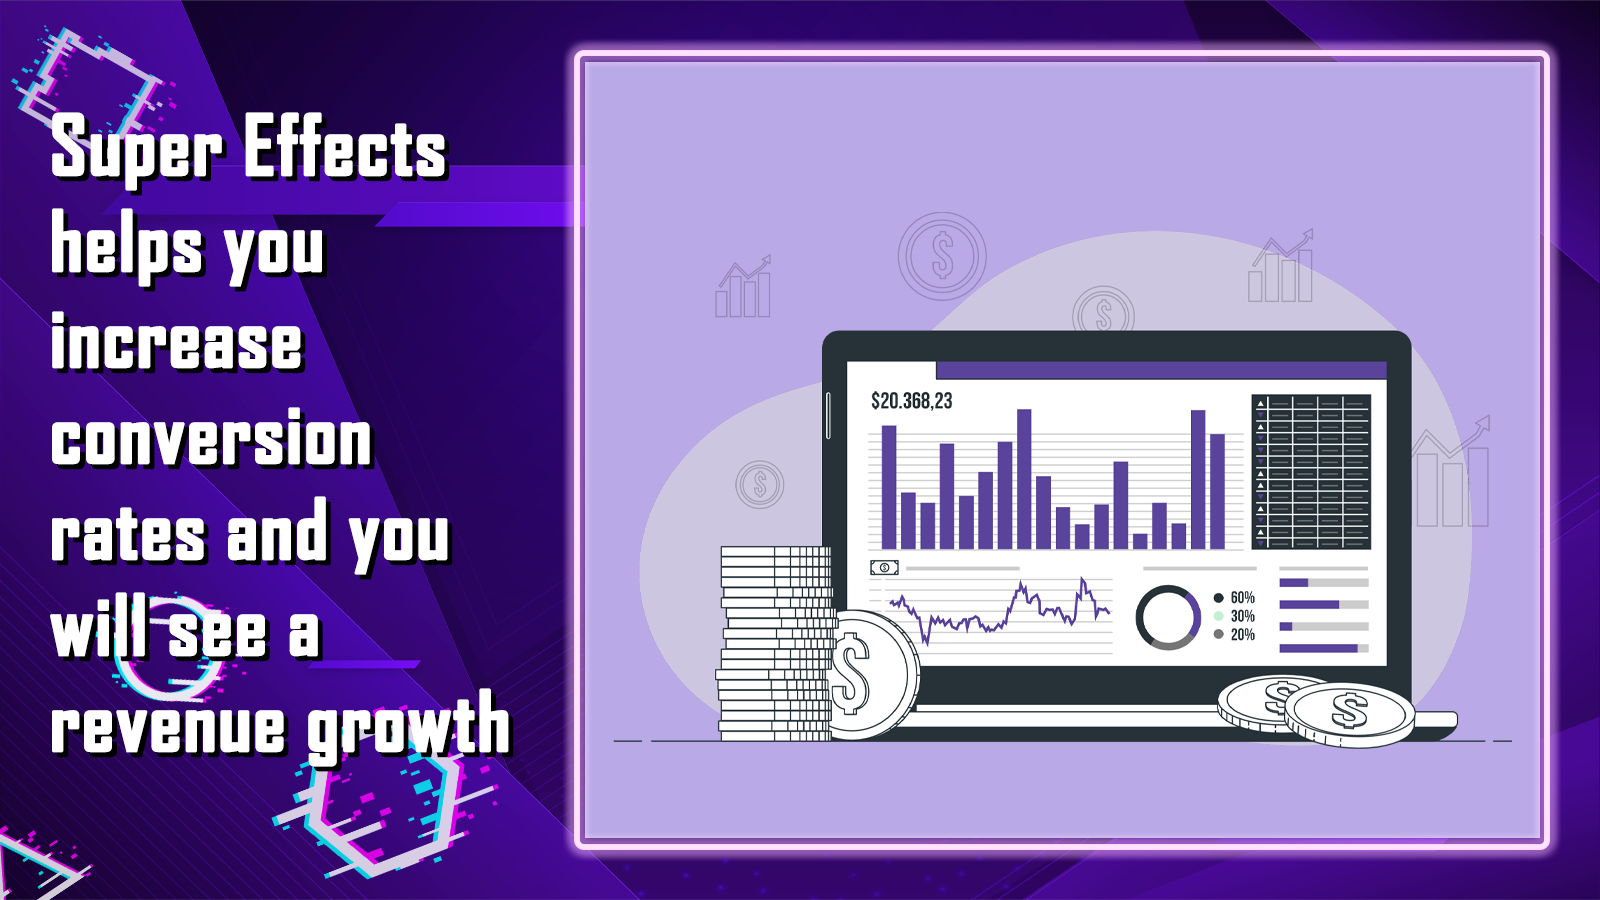 Super Effects helps you grow your seasonal revenue